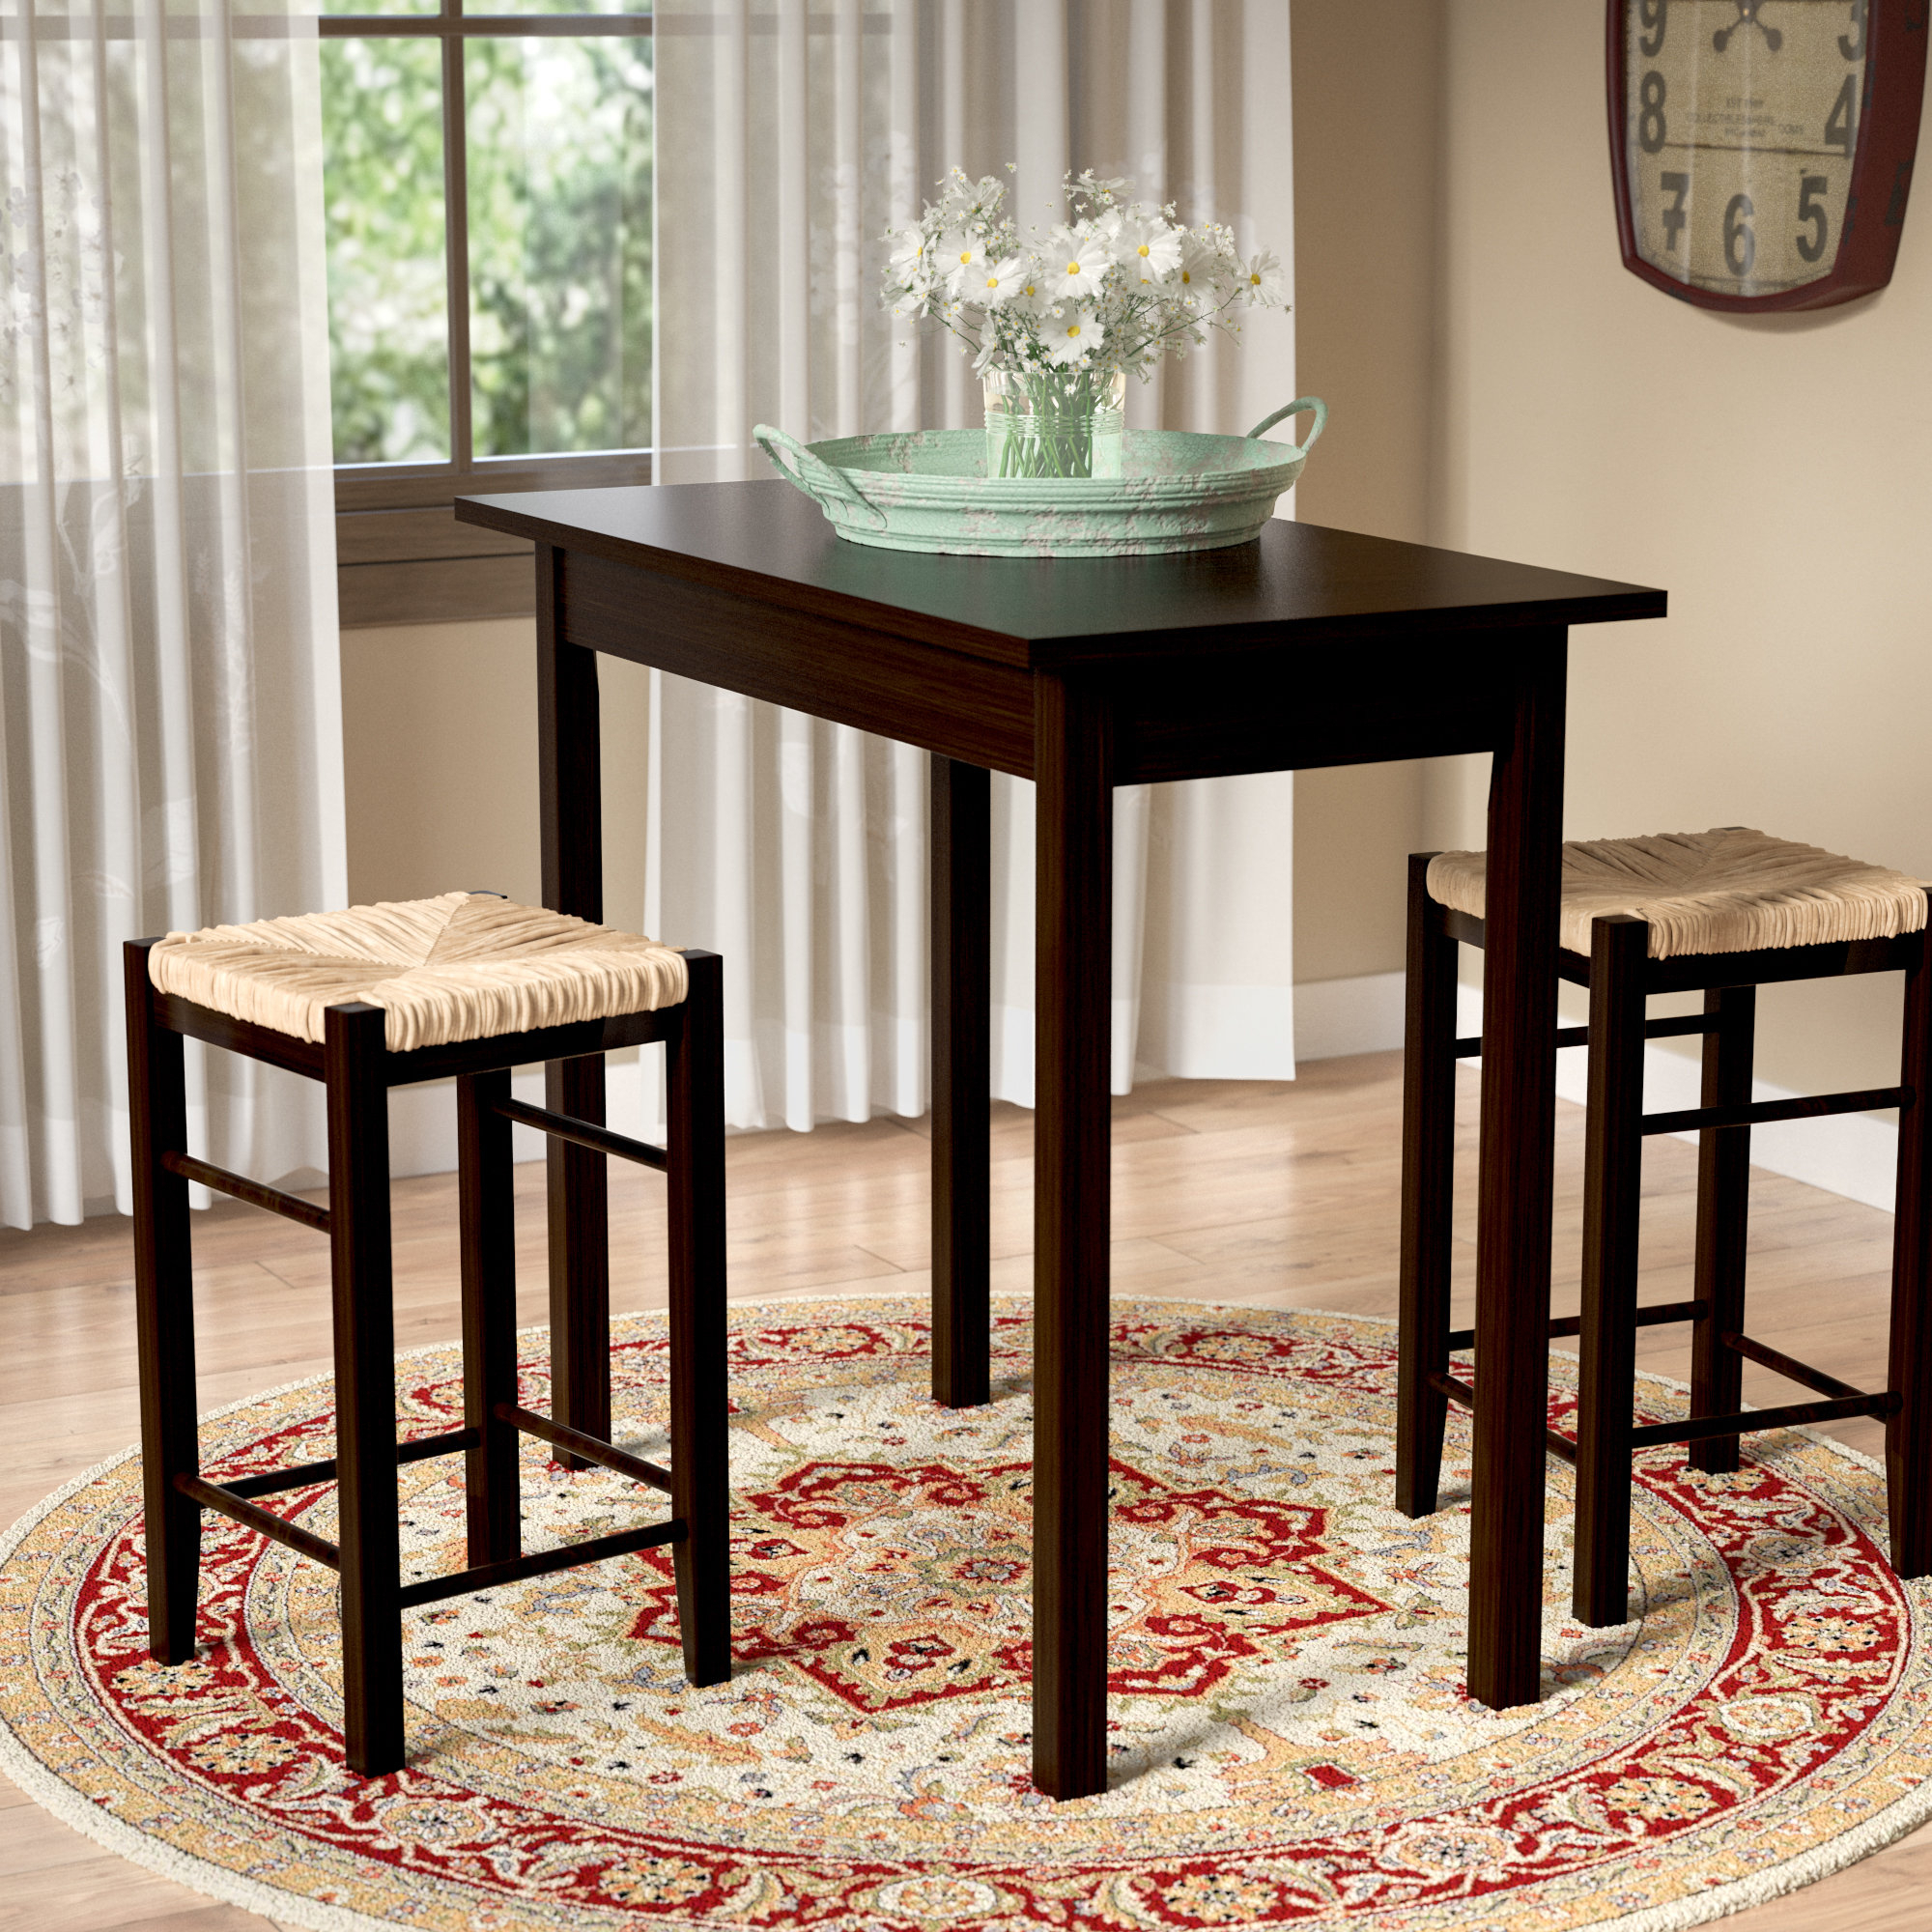 Tenney 3 Piece Counter Height Dining Set Within Most Up To Date Tenney 3 Piece Counter Height Dining Sets (Photo 1 of 20)